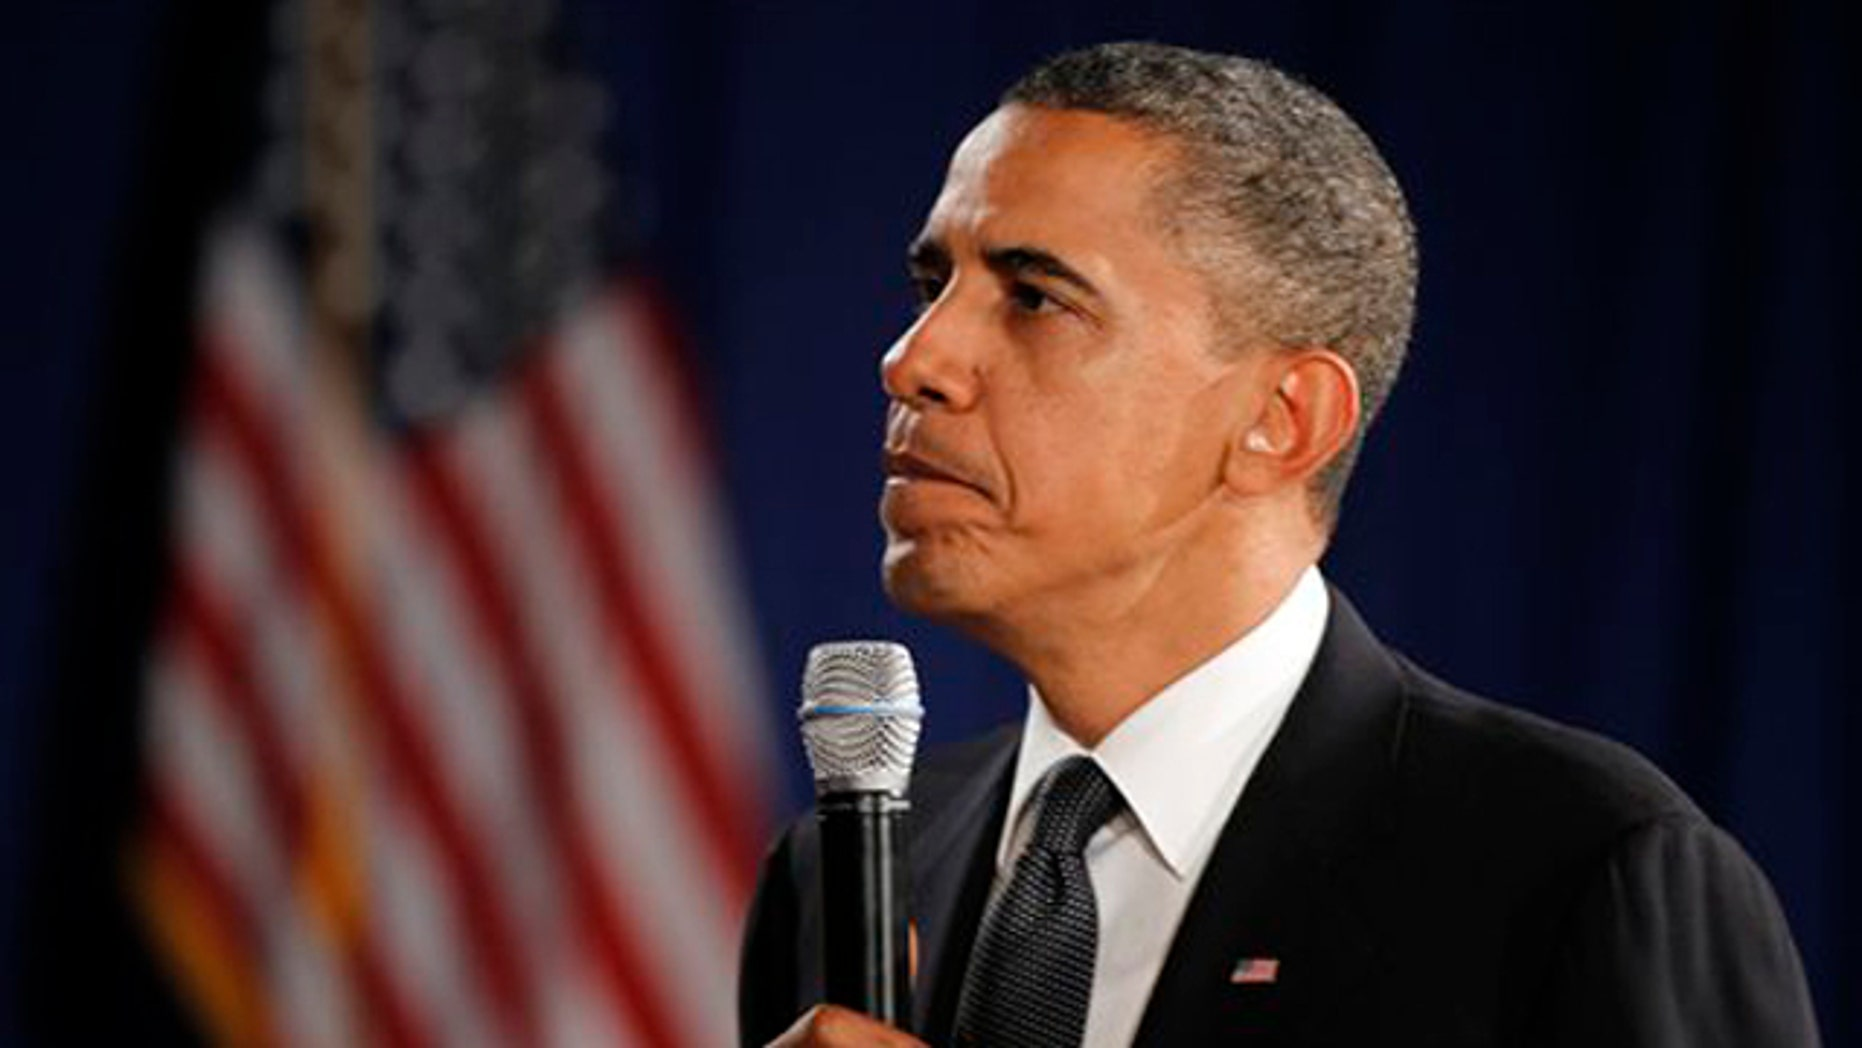 President Obama listens to a question at George Washington University in Washington Oct. 12.